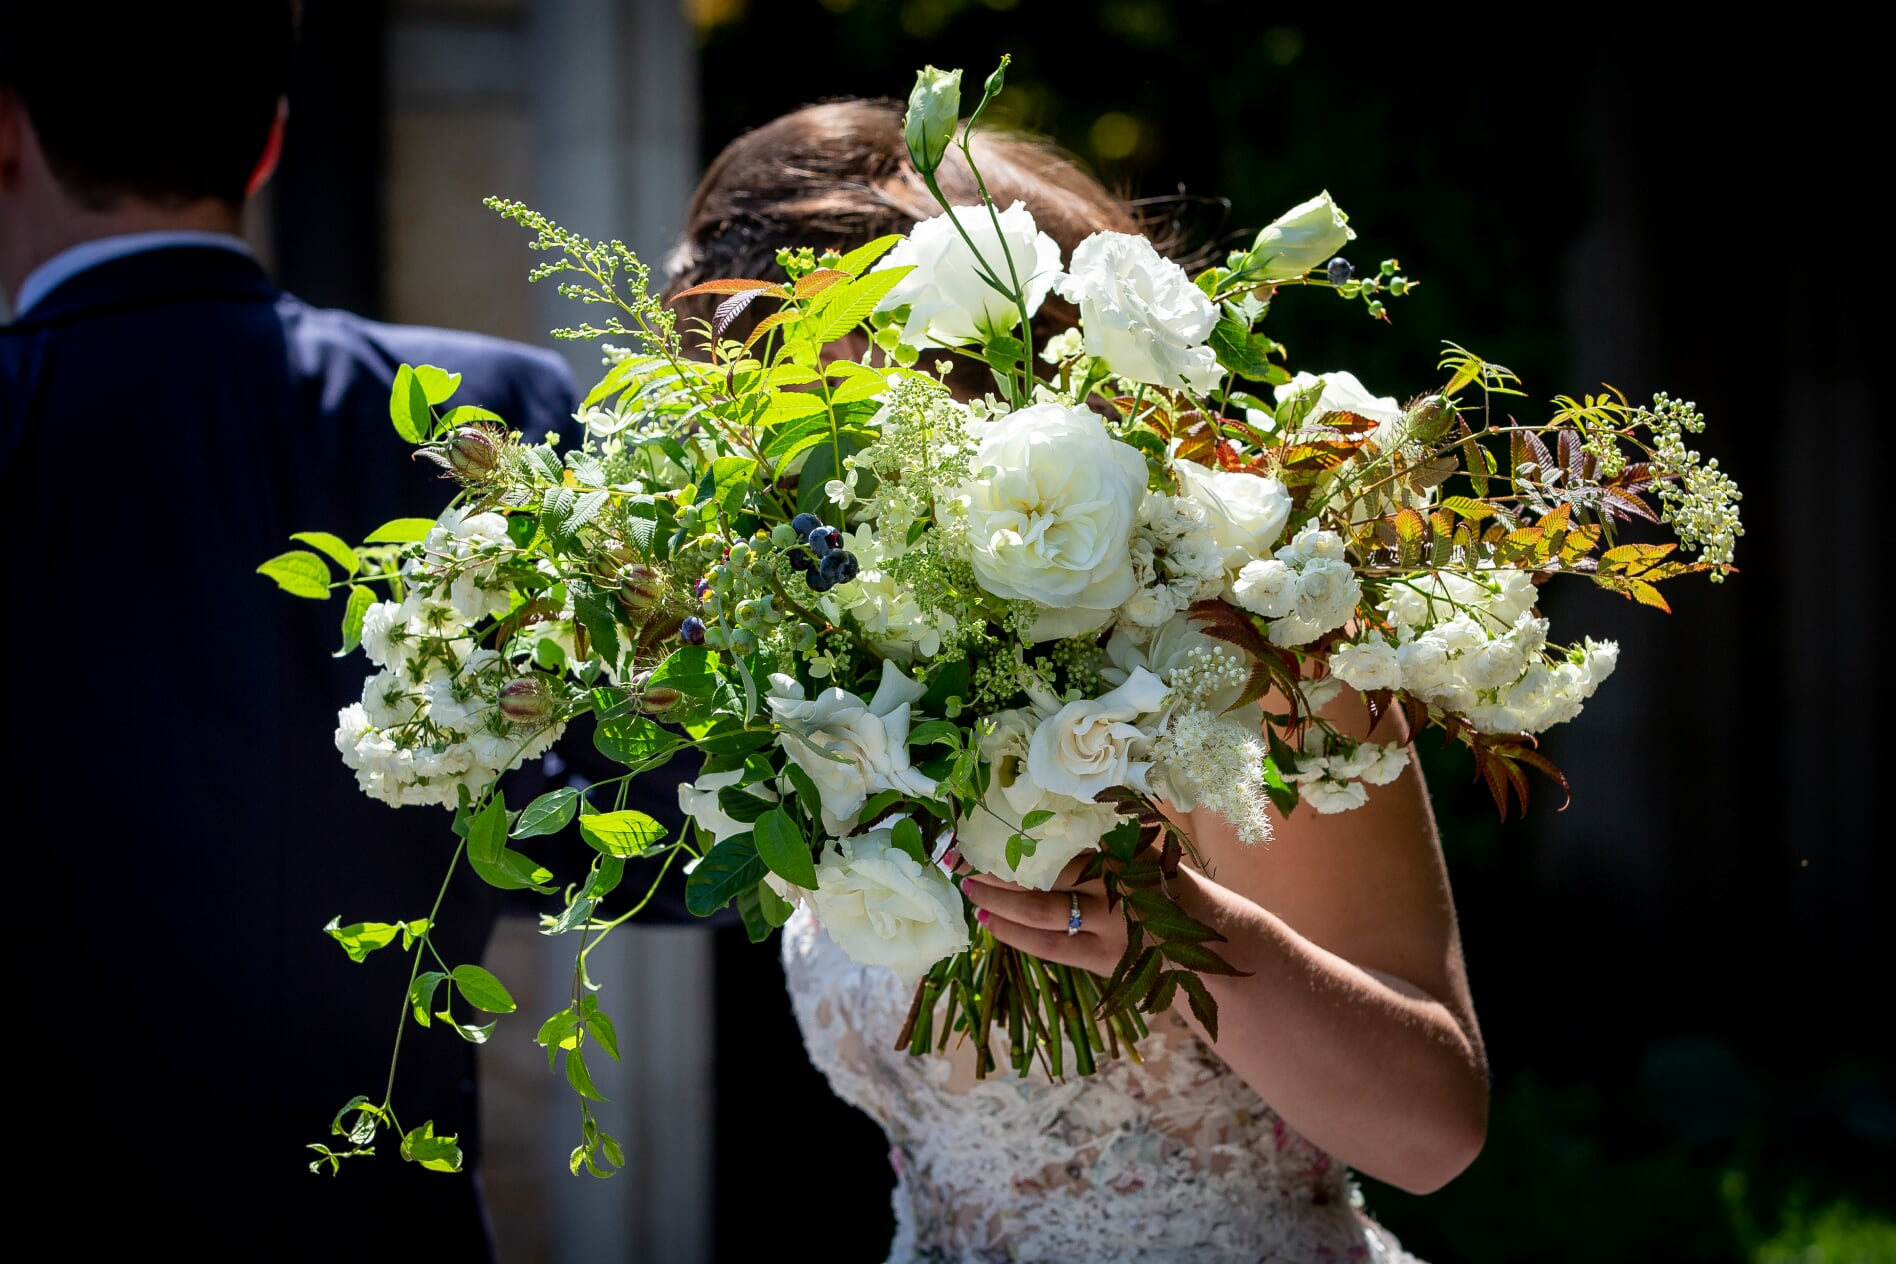 Bride holding midsummer night's wedding bouquet in front of her face